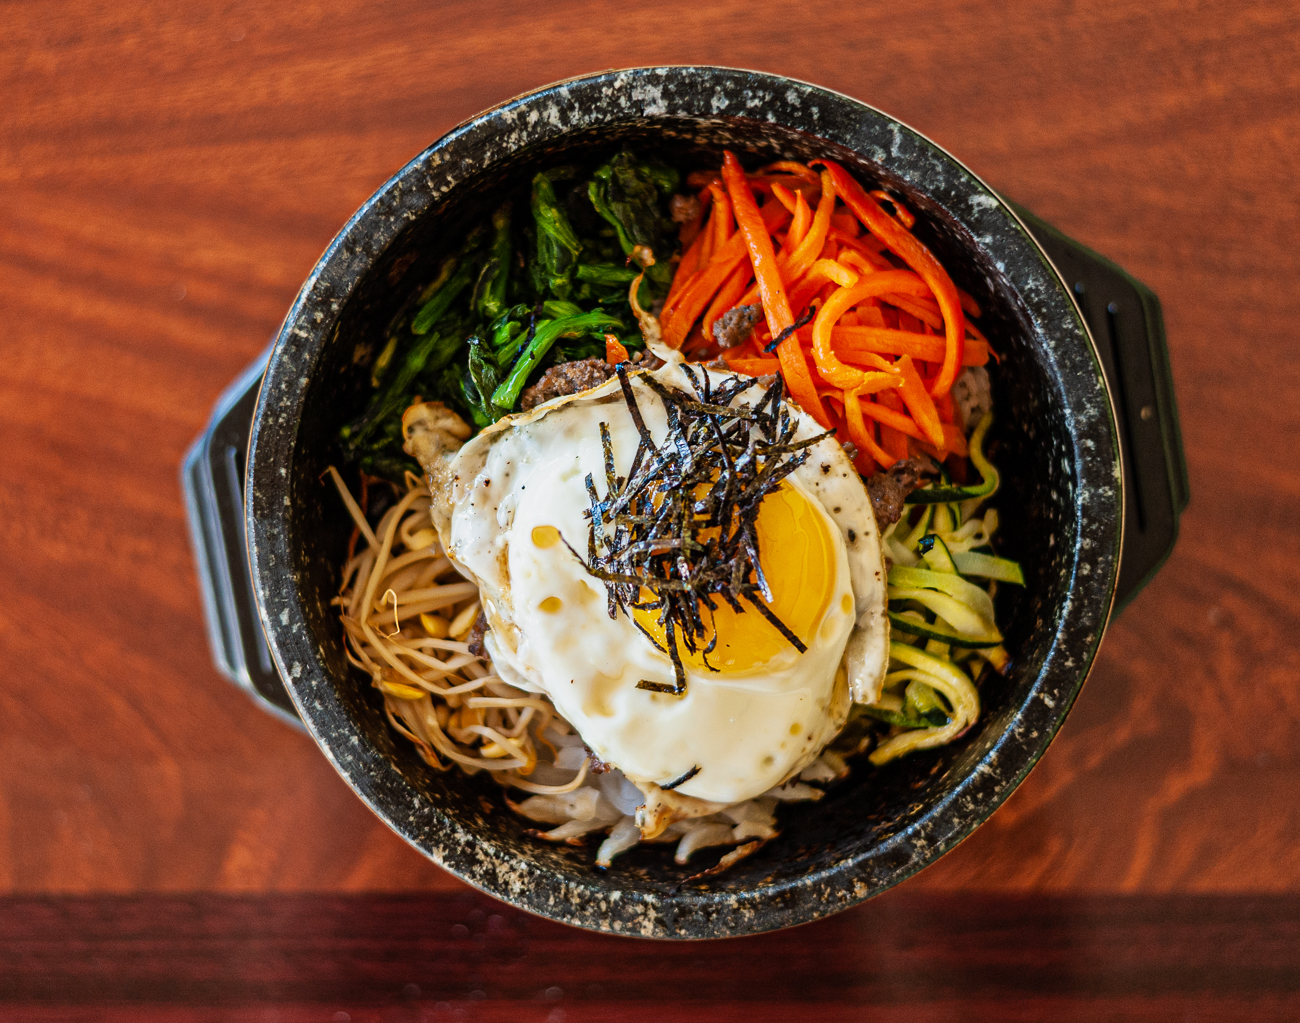 Dolsot Bibimbap: steamed rice topped with assorted stir fried vegetables and egg served in a sizzling hot stone bowl with spicy sauce on the side{&nbsp;}/ Image: Kellie Coleman // Published: 12.29.20<p></p>